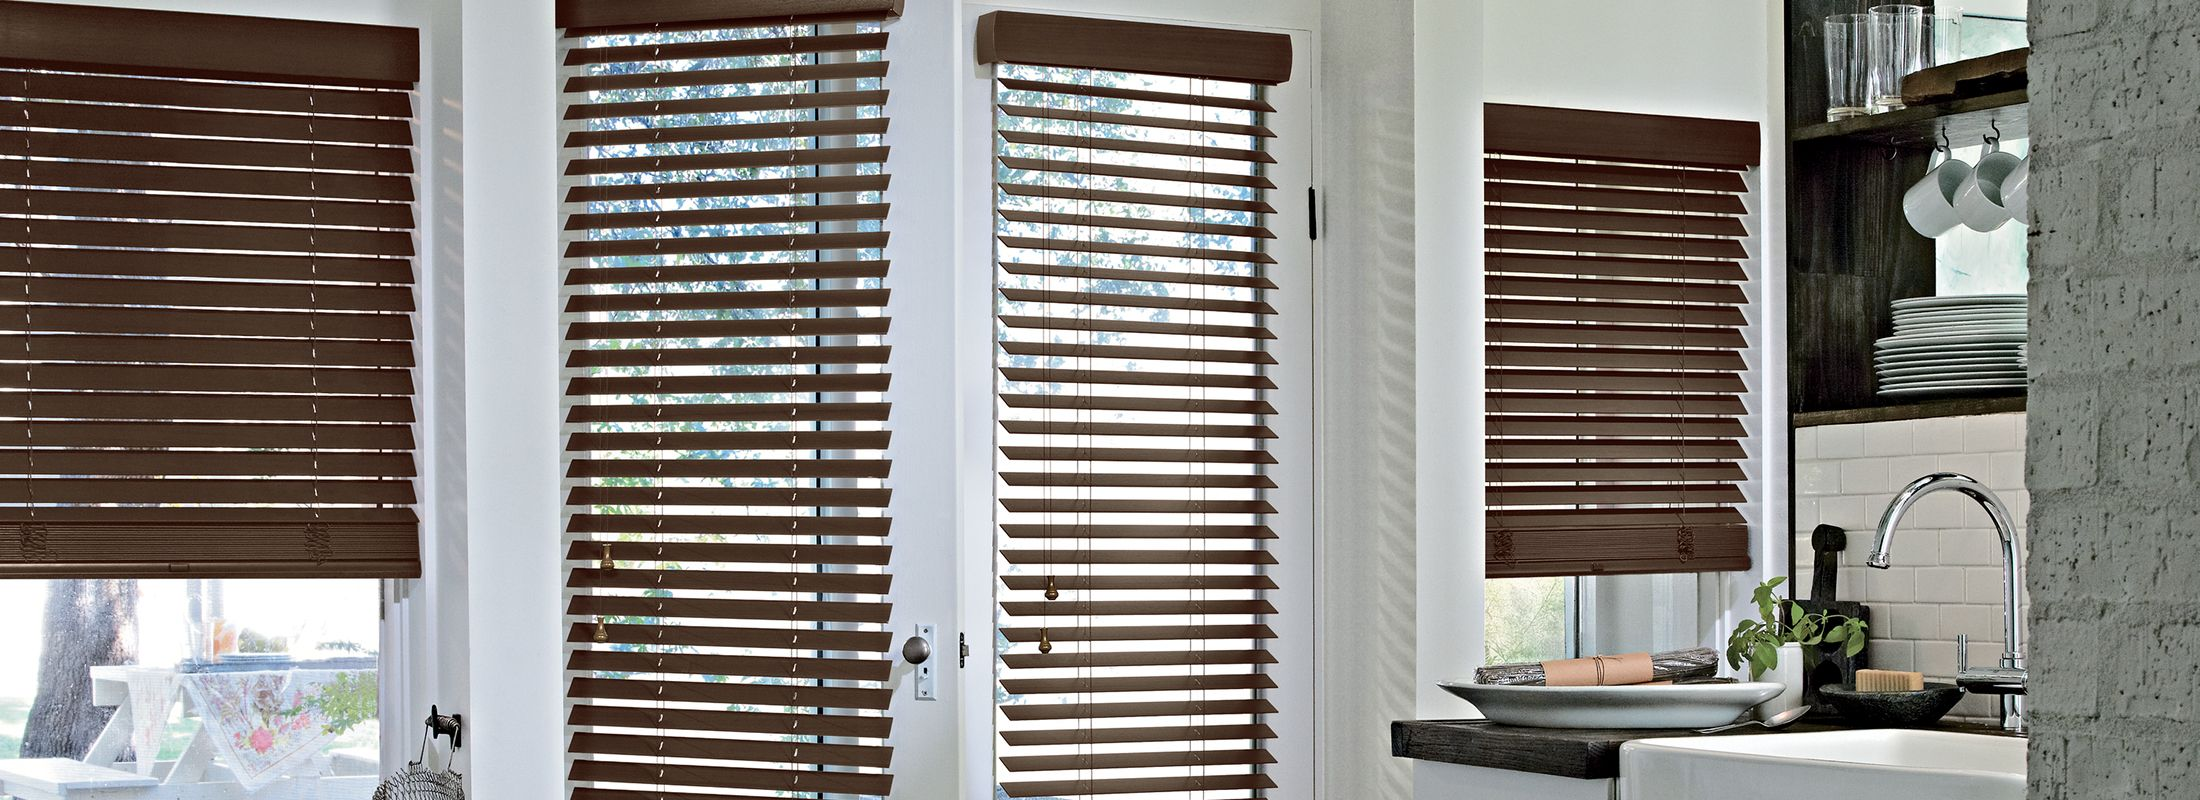 Wooden blinds in Textures Abachi Firewood - Parkland